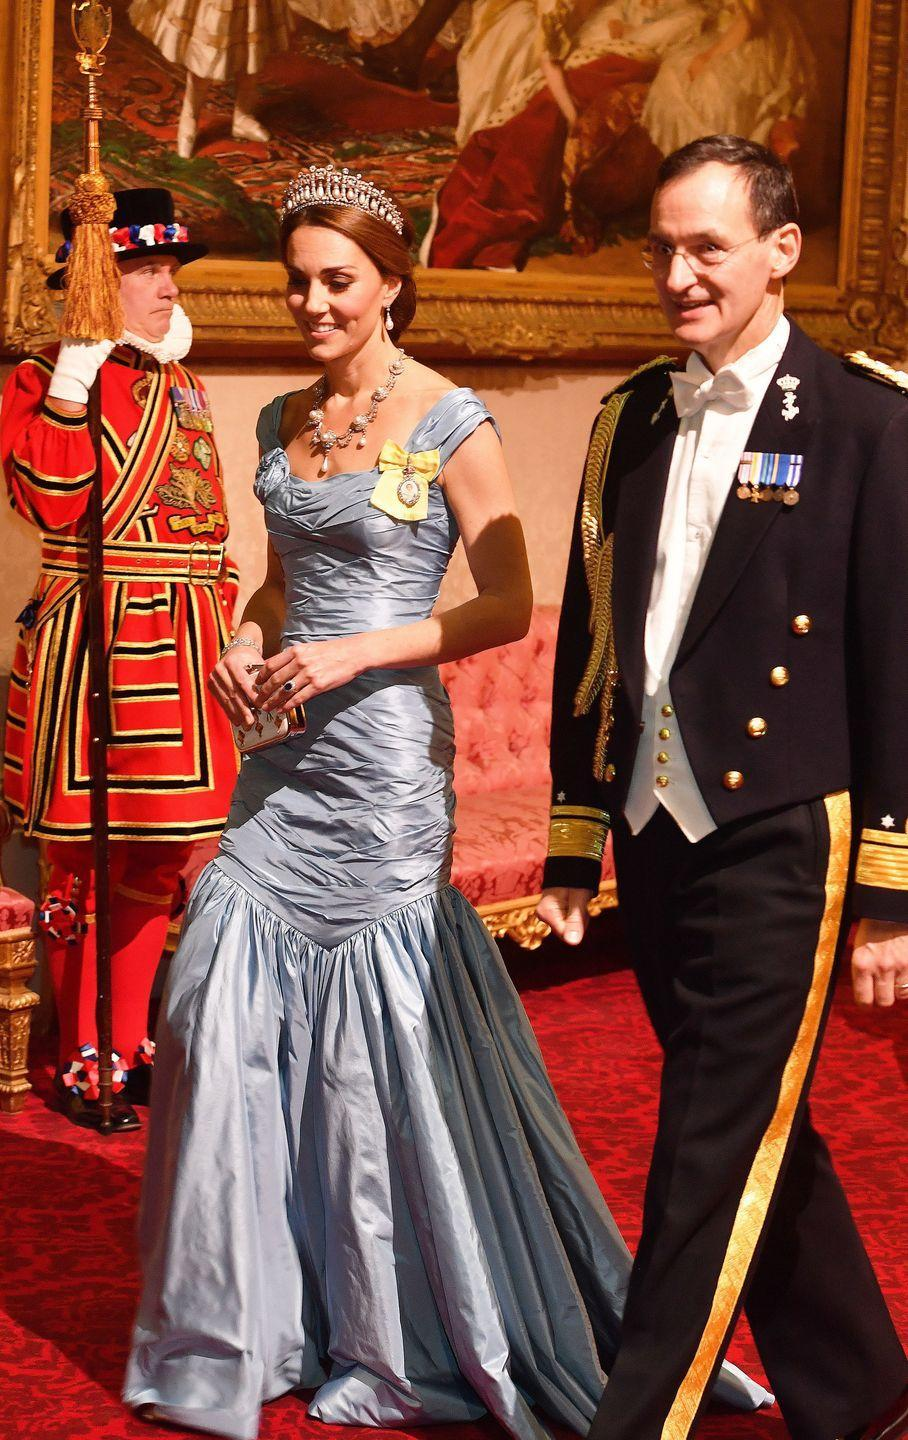 """<p>Kate pulled out all the stops for <a href=""""https://www.townandcountrymag.com/society/tradition/a24121823/kate-middleton-alexander-mcqueen-blue-dress-dutch-state-banquet/"""" rel=""""nofollow noopener"""" target=""""_blank"""" data-ylk=""""slk:the Dutch state dinner"""" class=""""link rapid-noclick-resp"""">the Dutch state dinner</a> in 2018. The Duchess paired the famed Lover's Knot tiara with an icy blue McQueen gown.</p>"""